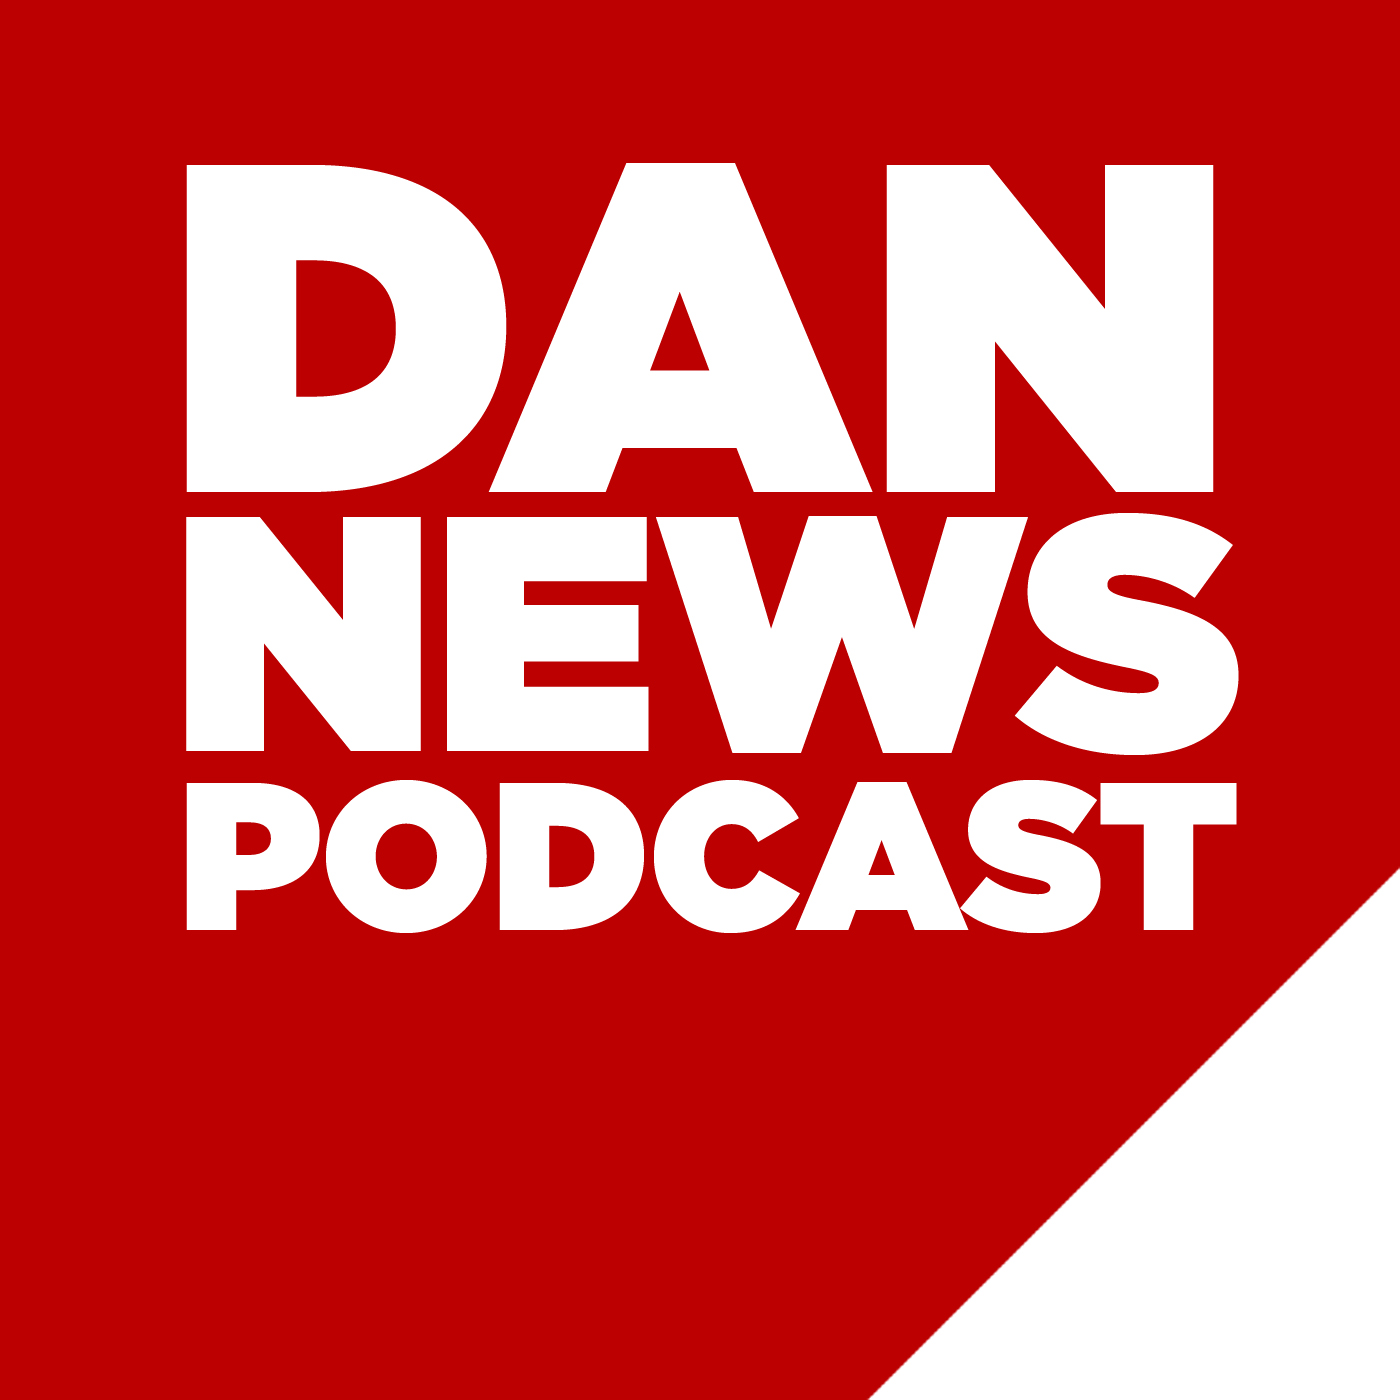 The Dan News Podcast